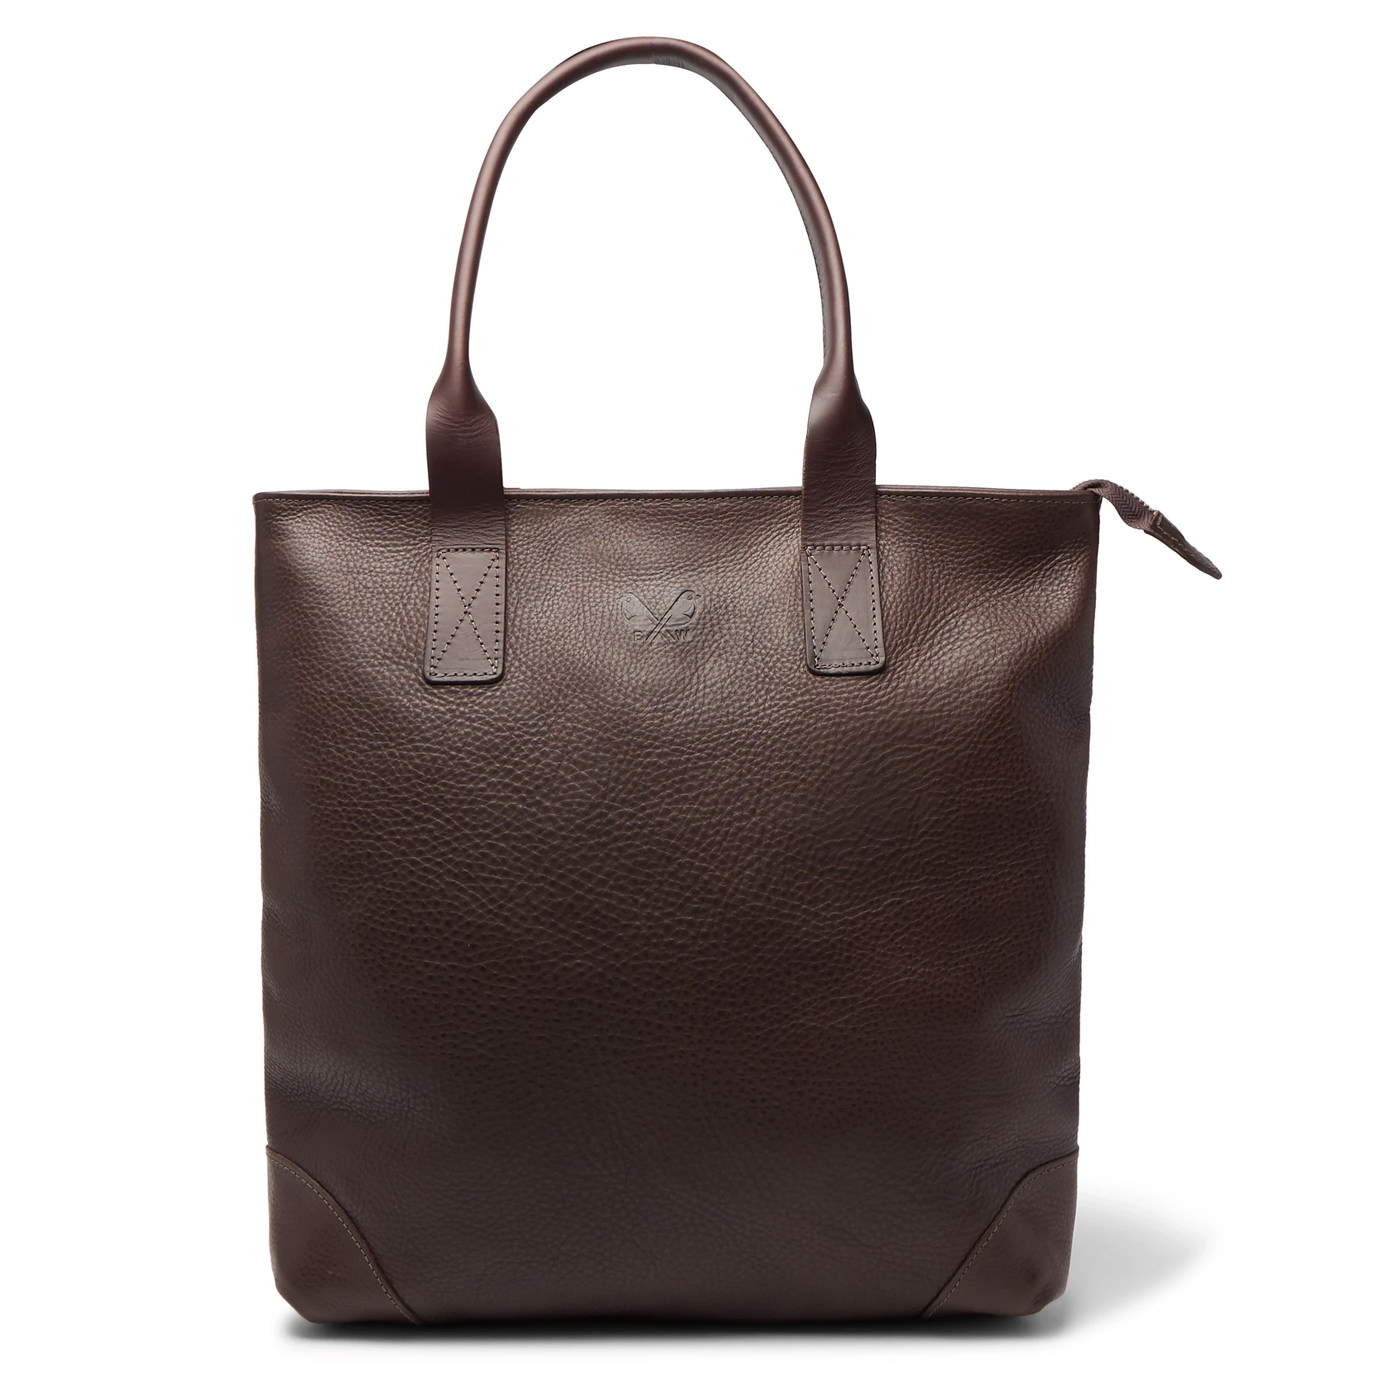 Style Mr Porter Tote Bag Bennett Winch Cuir Marron